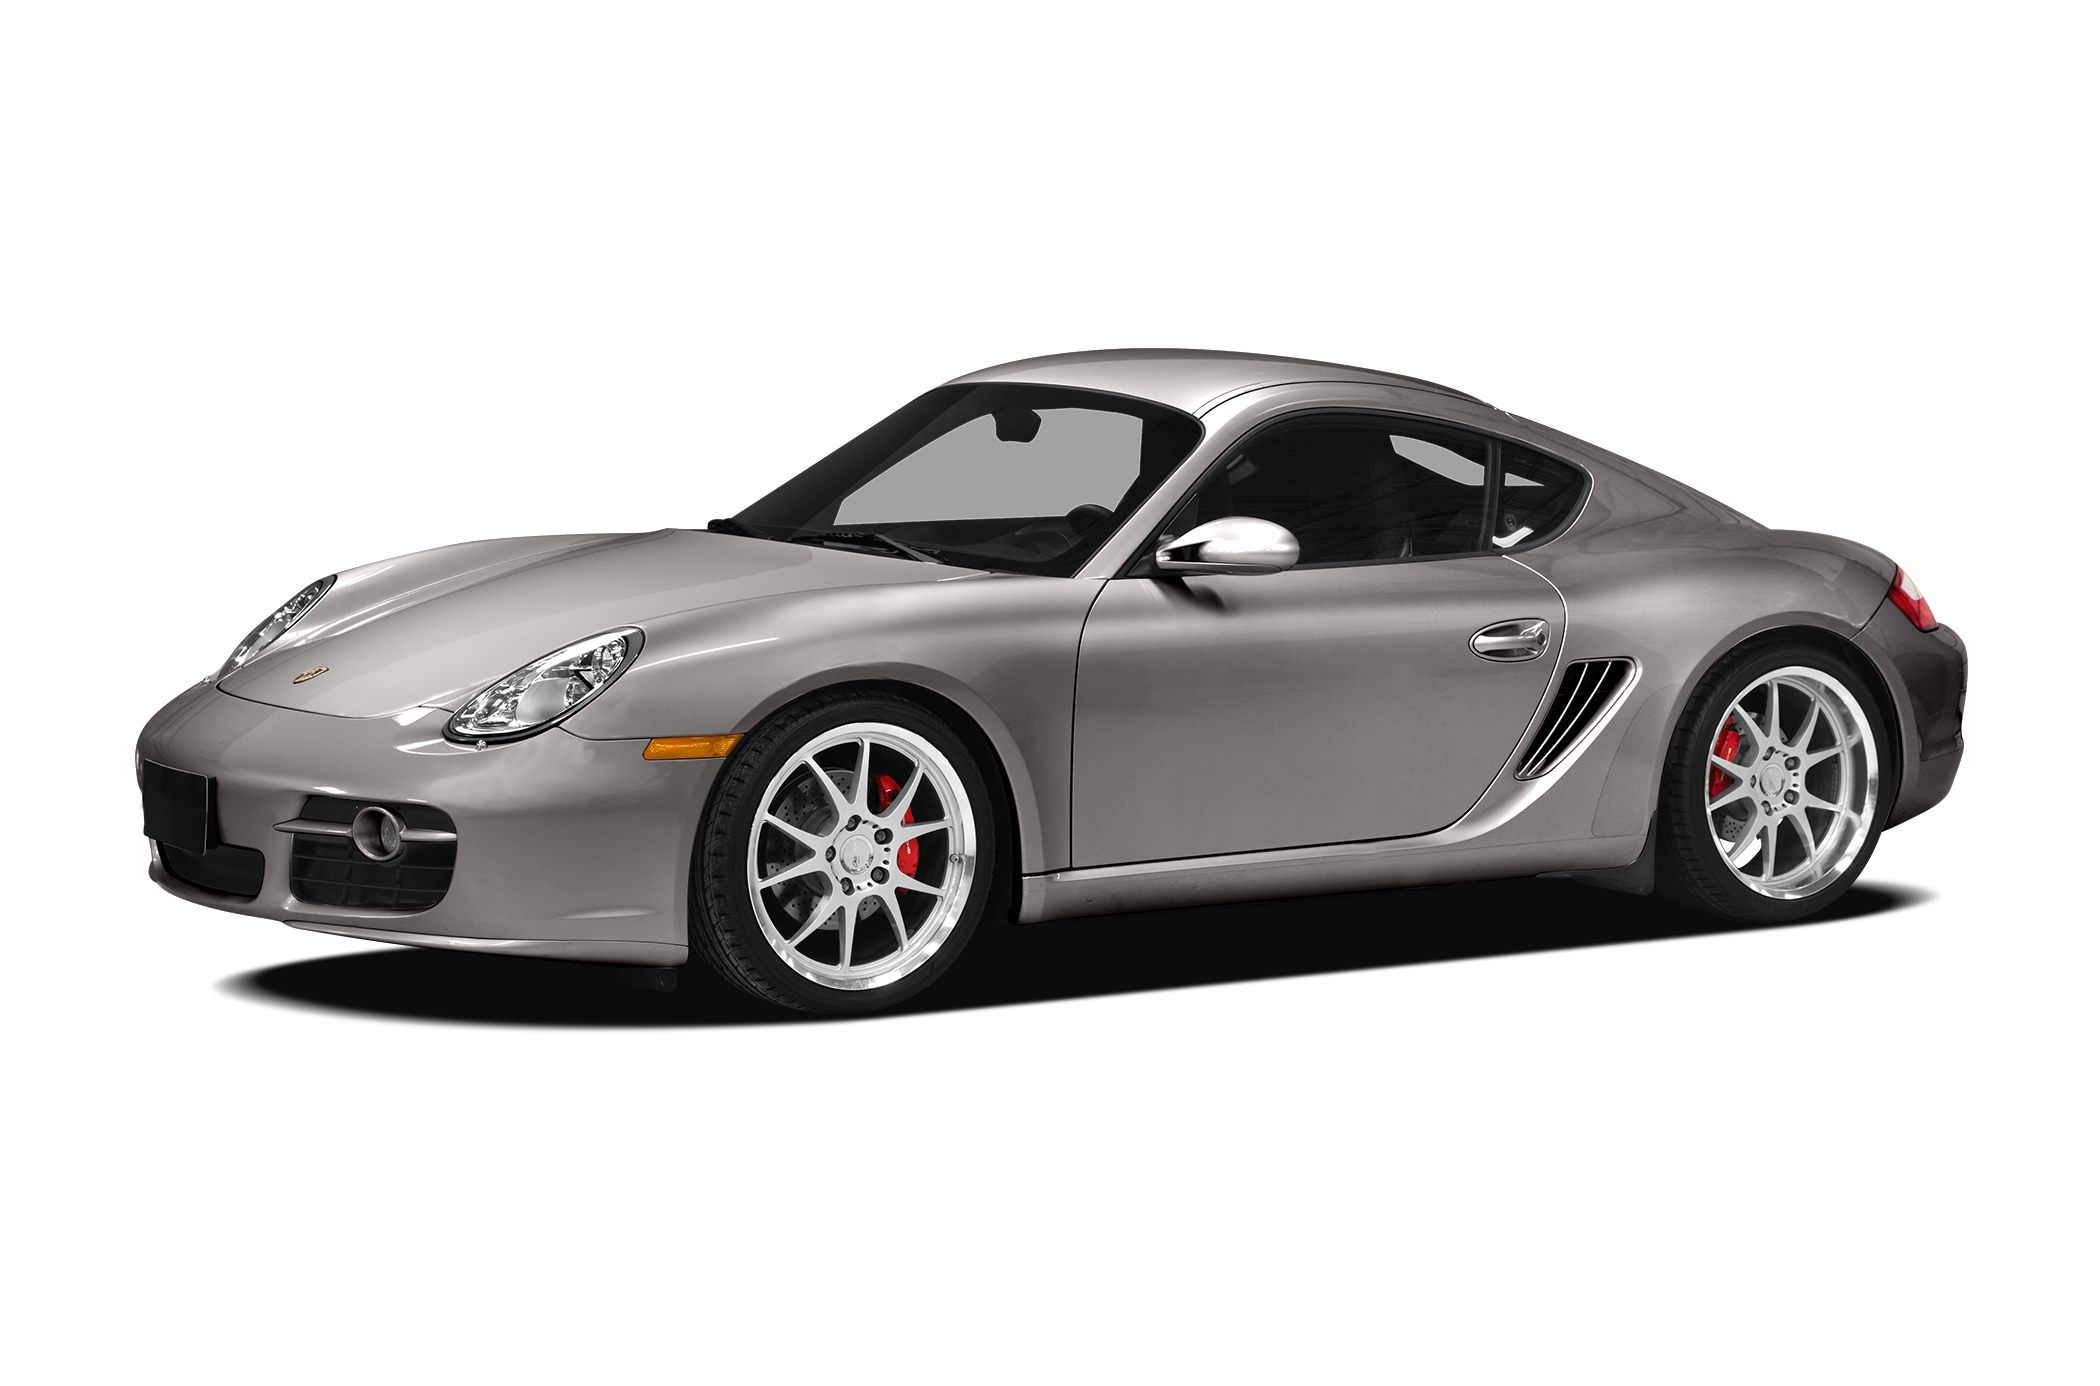 porsche cayman s porsche design edition 1 photo gallery autoblog. Black Bedroom Furniture Sets. Home Design Ideas